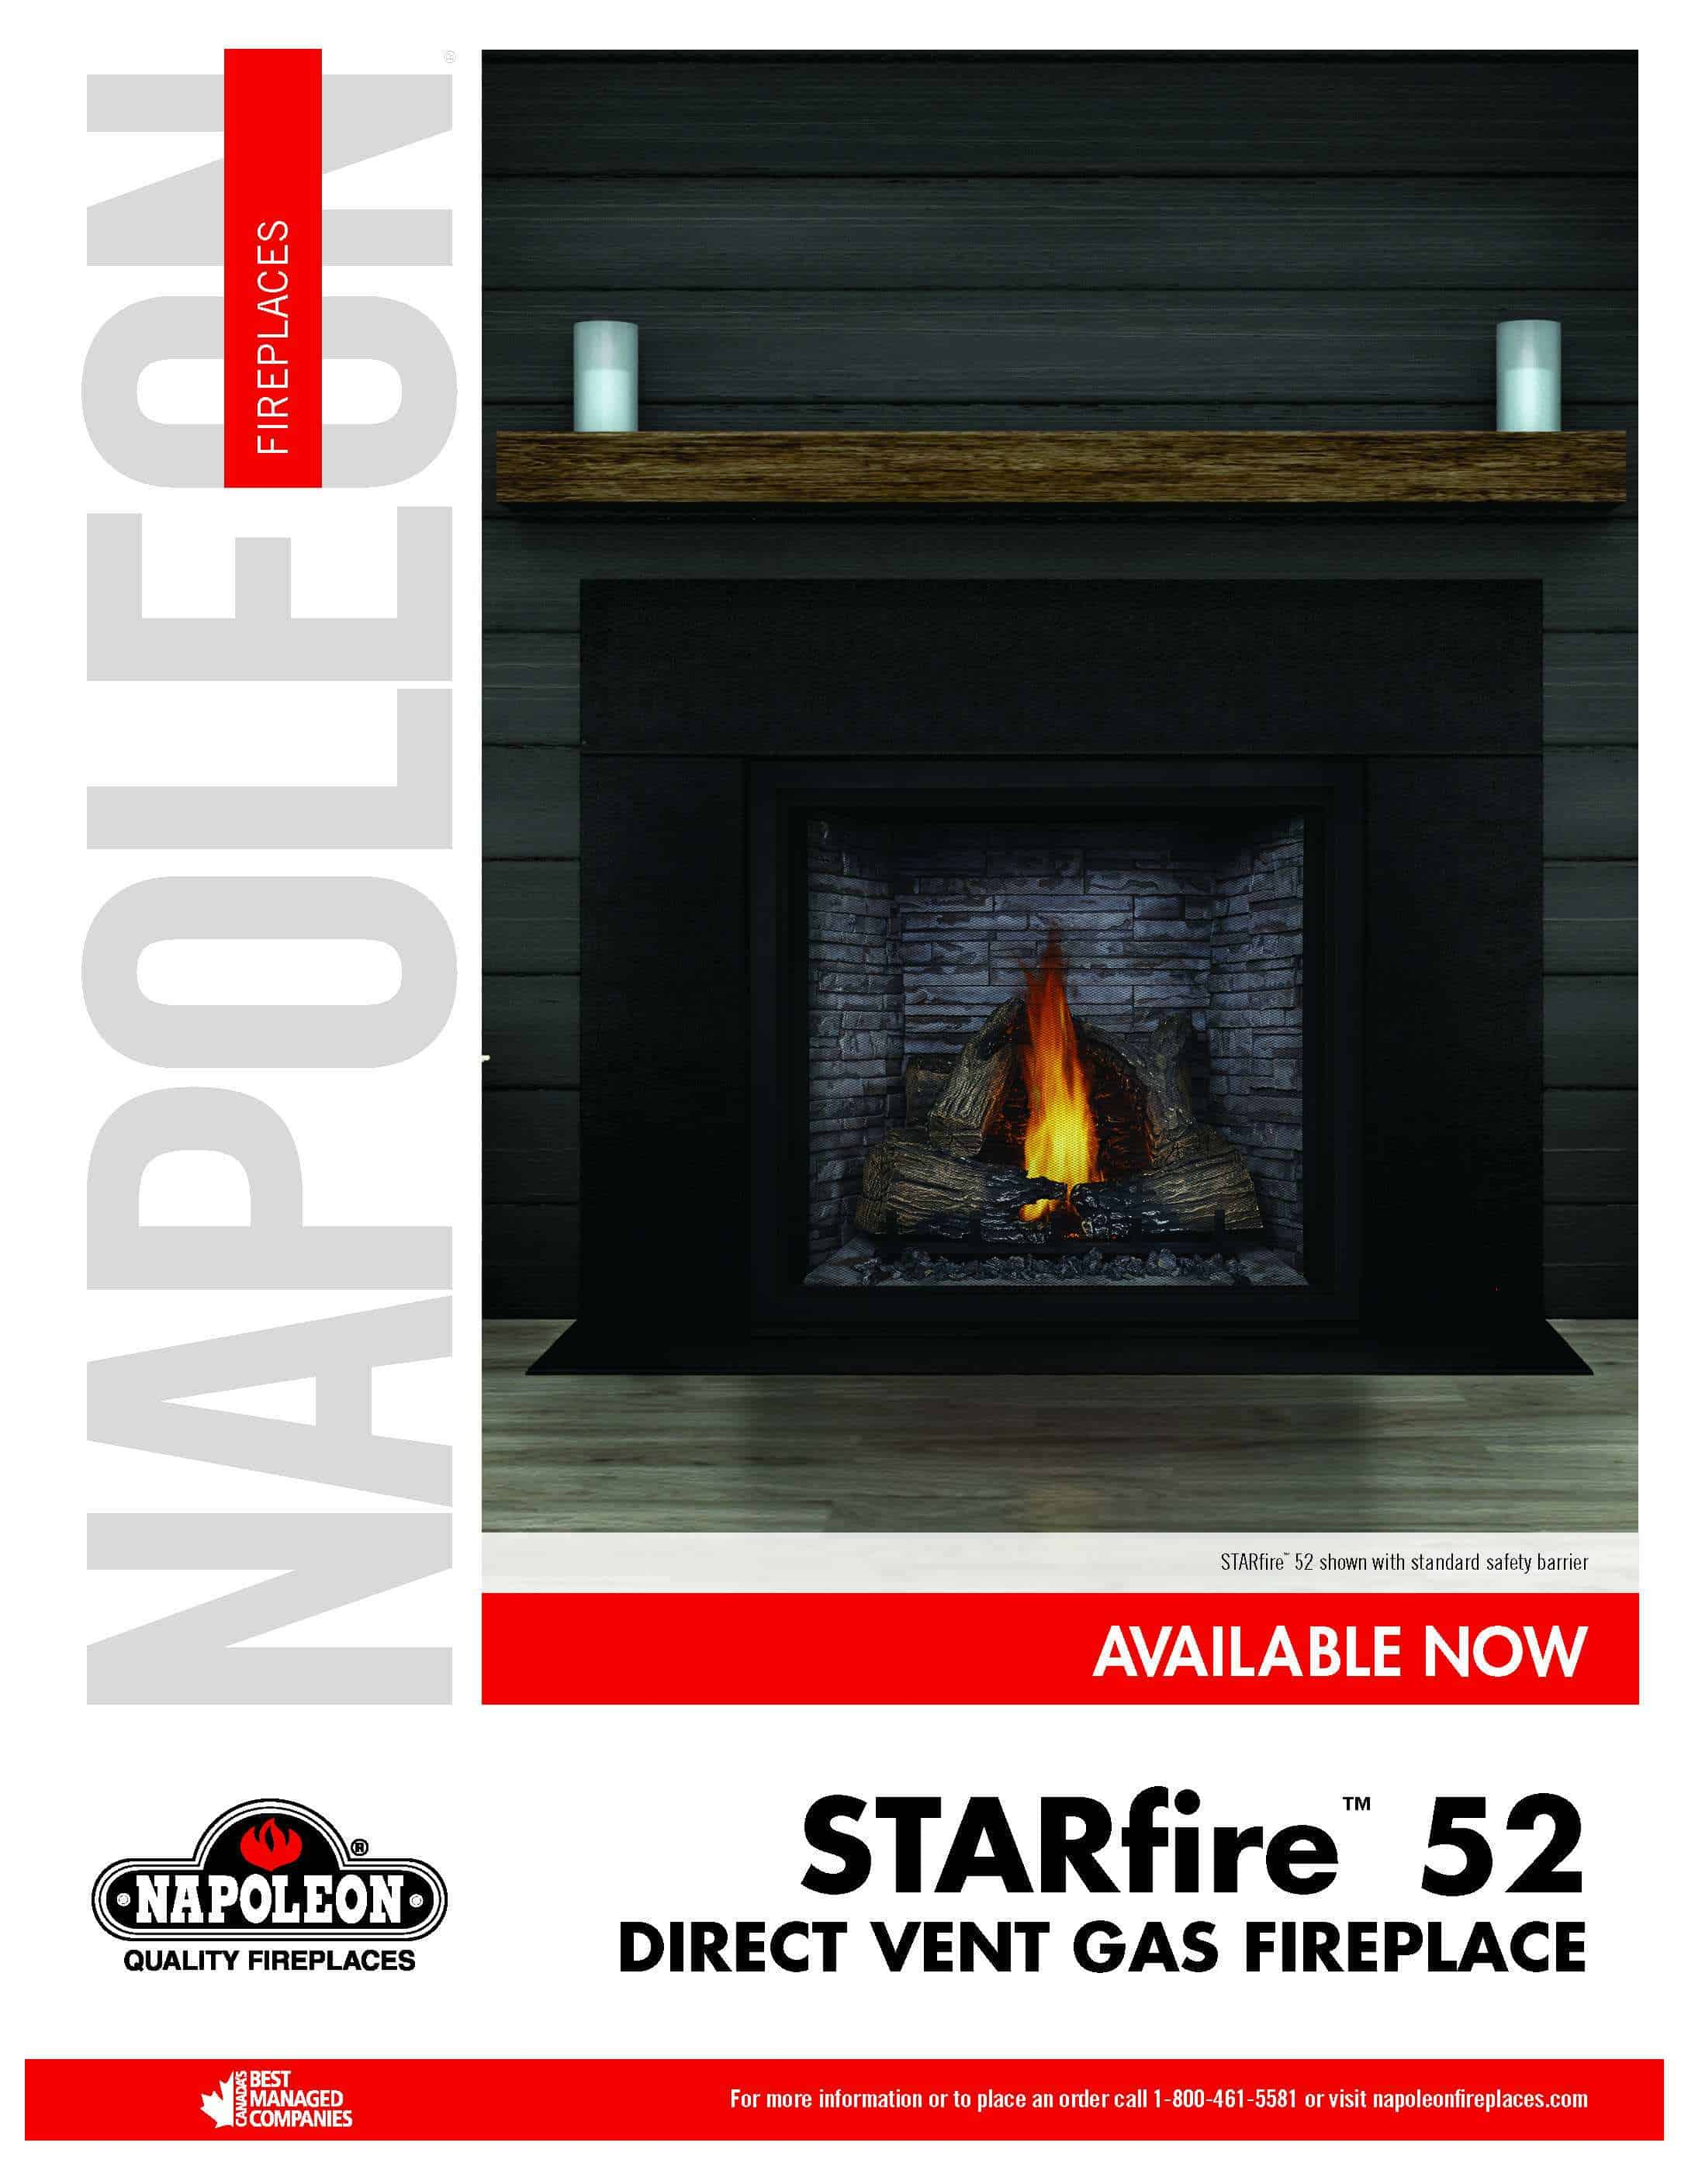 Biggest Gas Direct Vent Fireplace - STARfire™ 52 by Napoleon HDX52 1